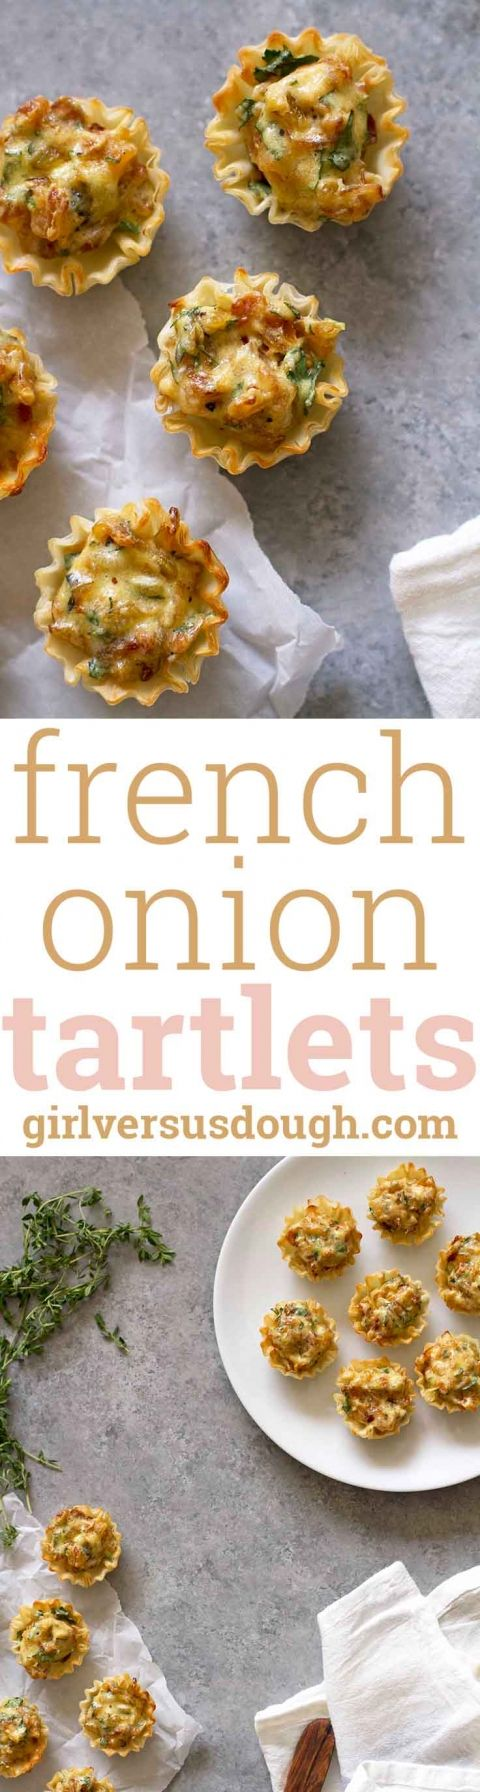 French Onion Tartlets -- crispy, buttery, flaky phyllo shells filled with a creamy caramelized onion filling. The best new Thanksgiving or holiday party appetizer! girlversusdough.com @girlversusdough